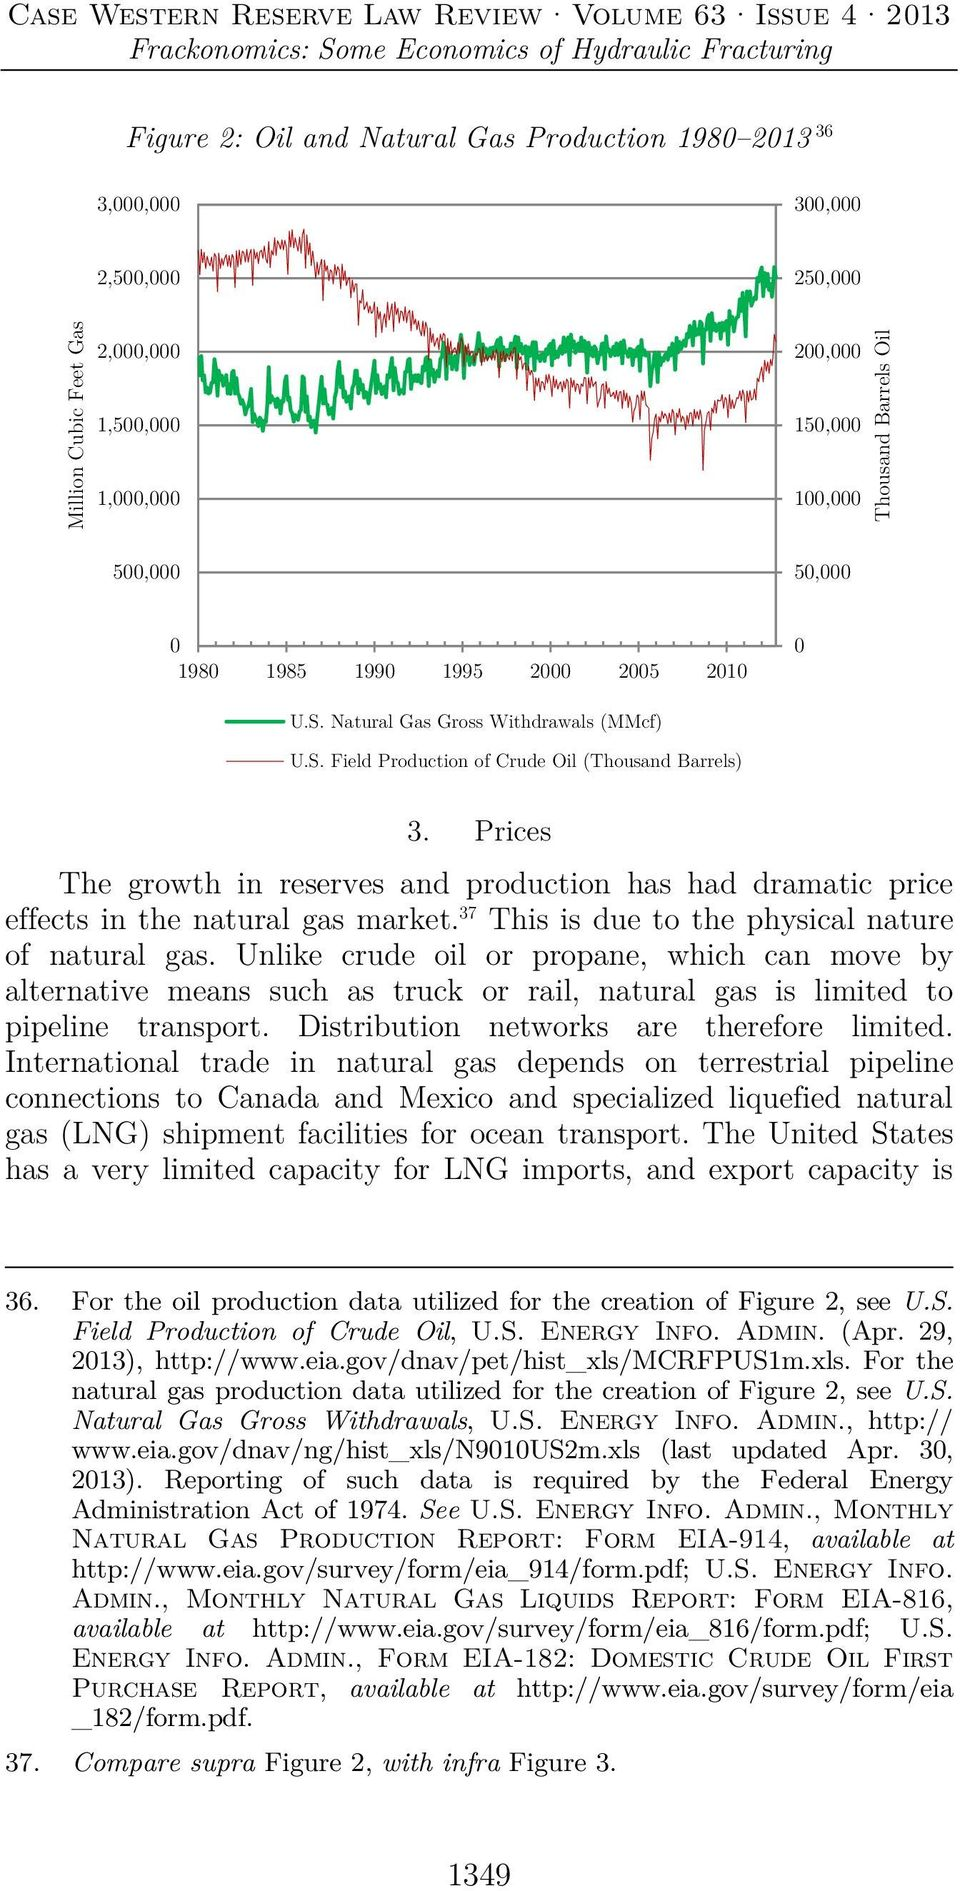 Prices The growth in reserves and production has had dramatic price effects in the natural gas market. 37 This is due to the physical nature of natural gas.